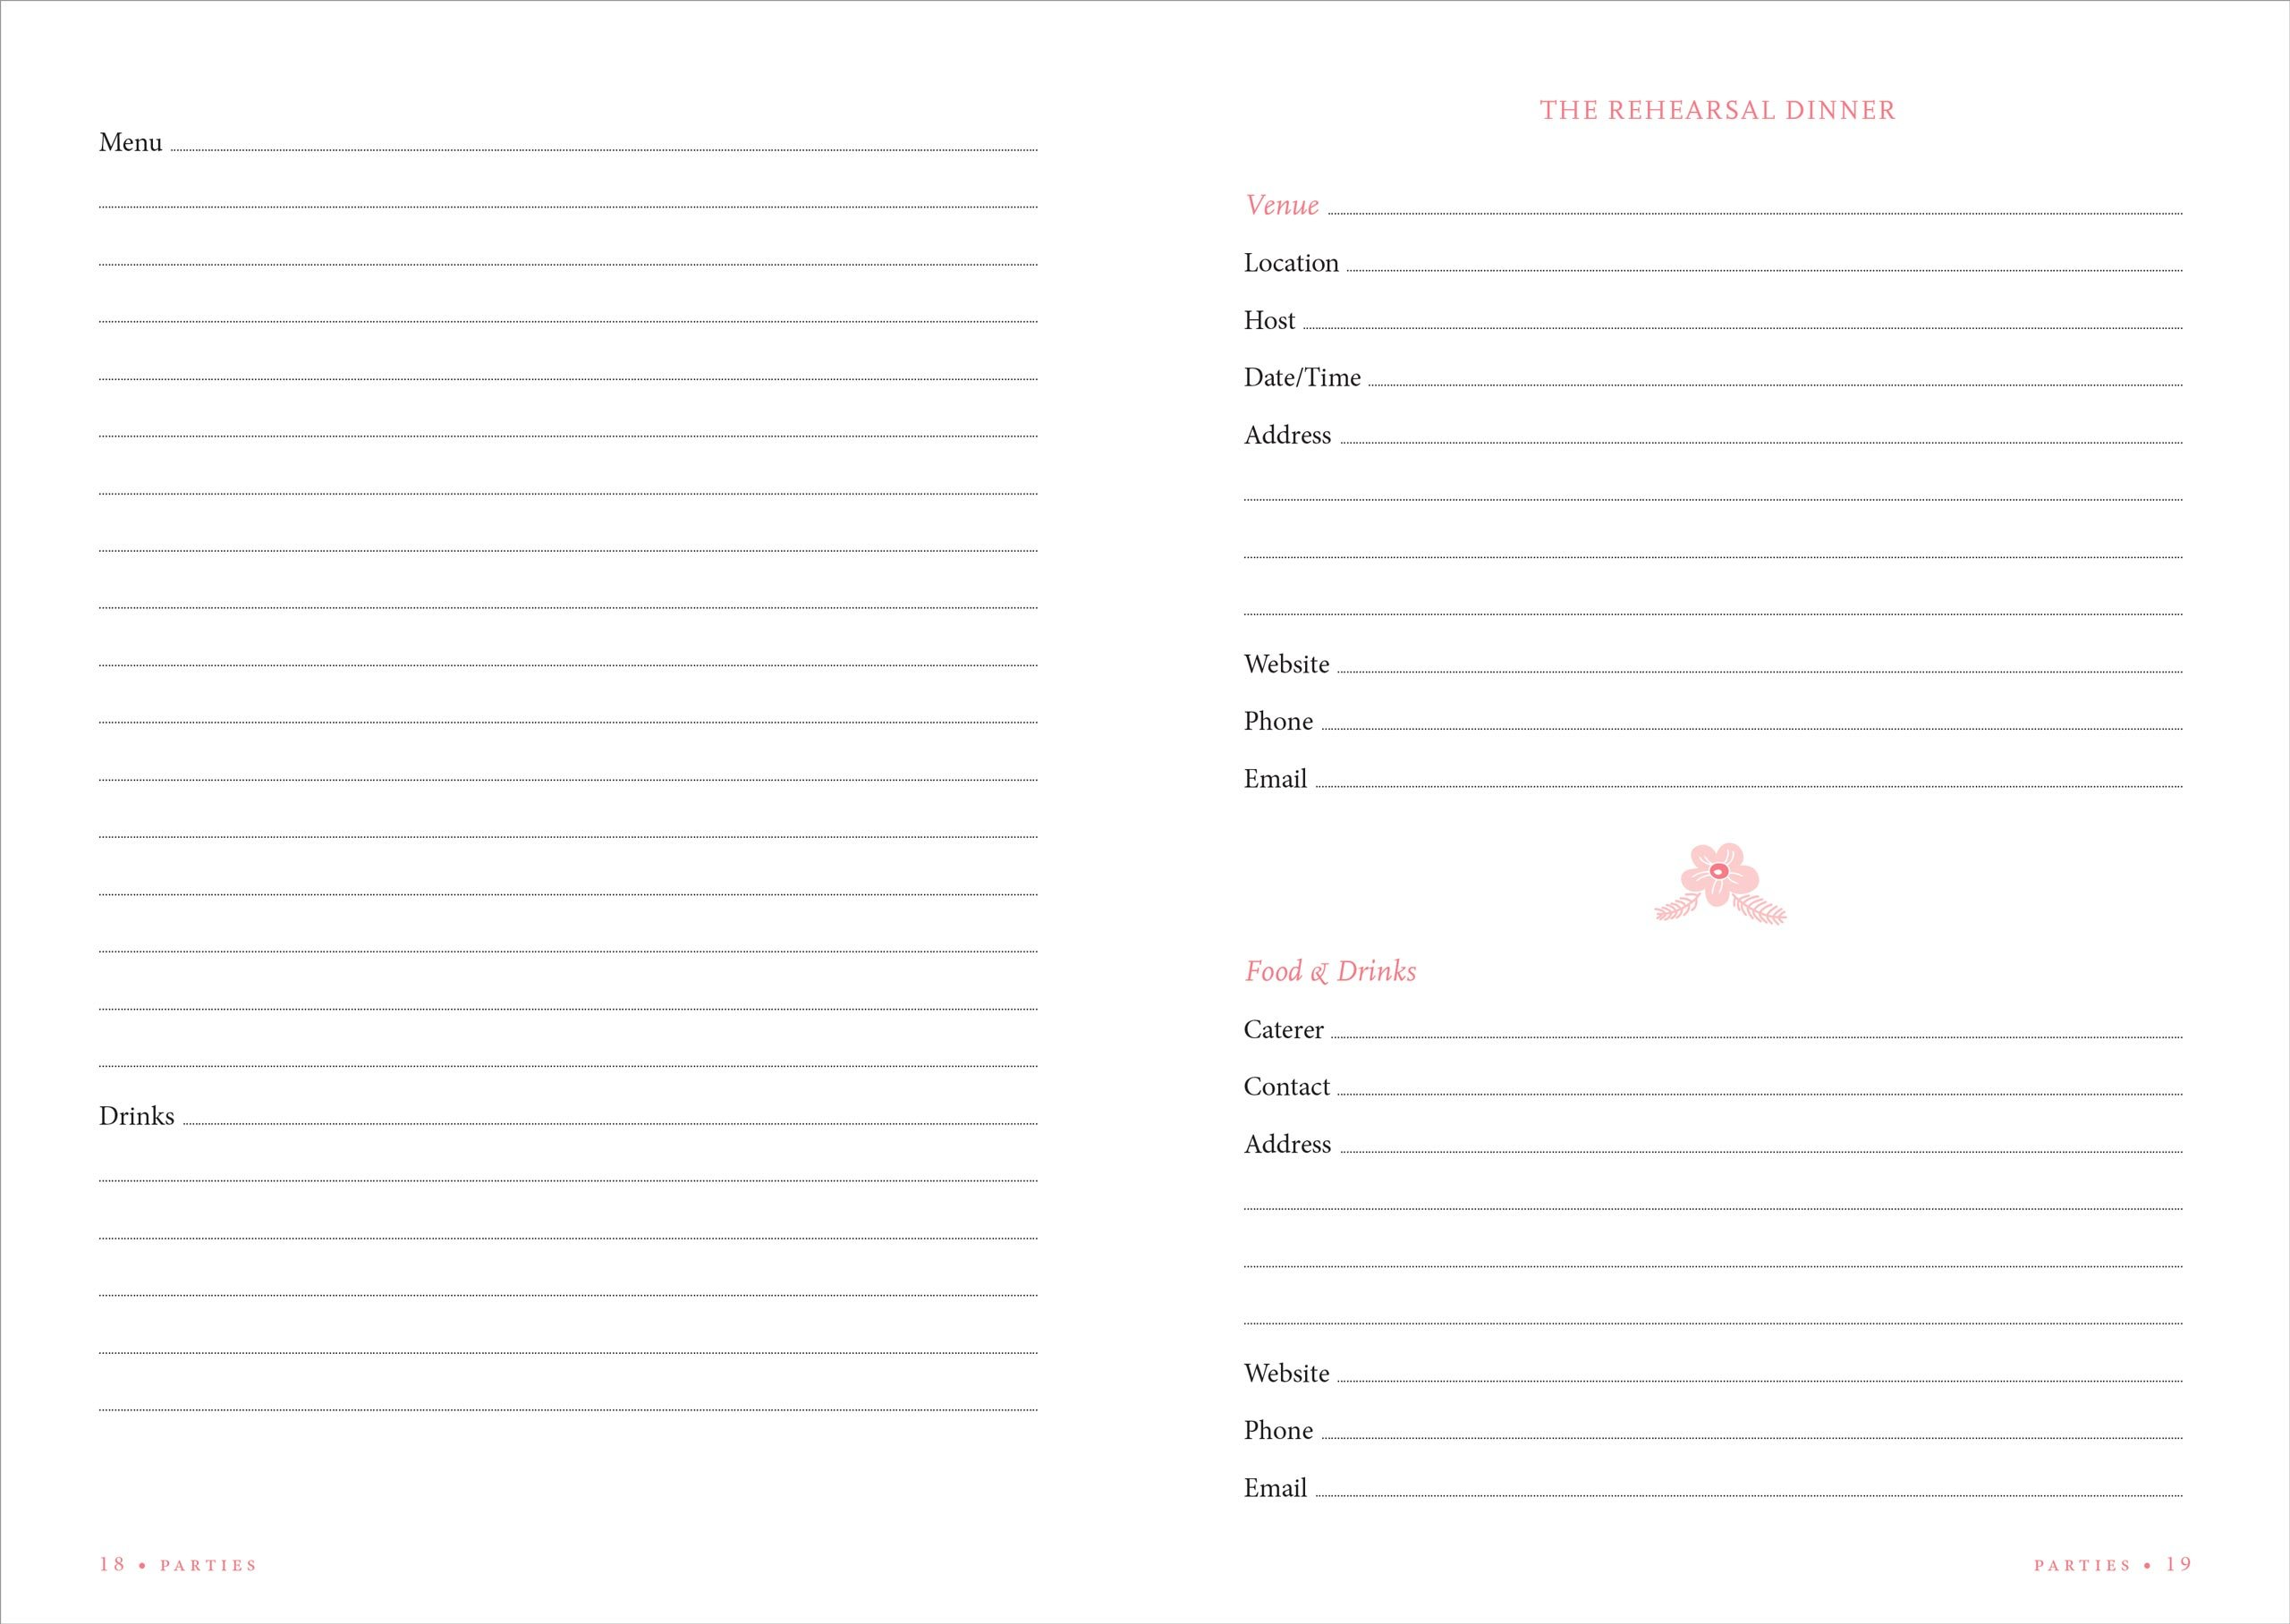 The Wedding Planner Checklist A Portable Guide To Organizing Your